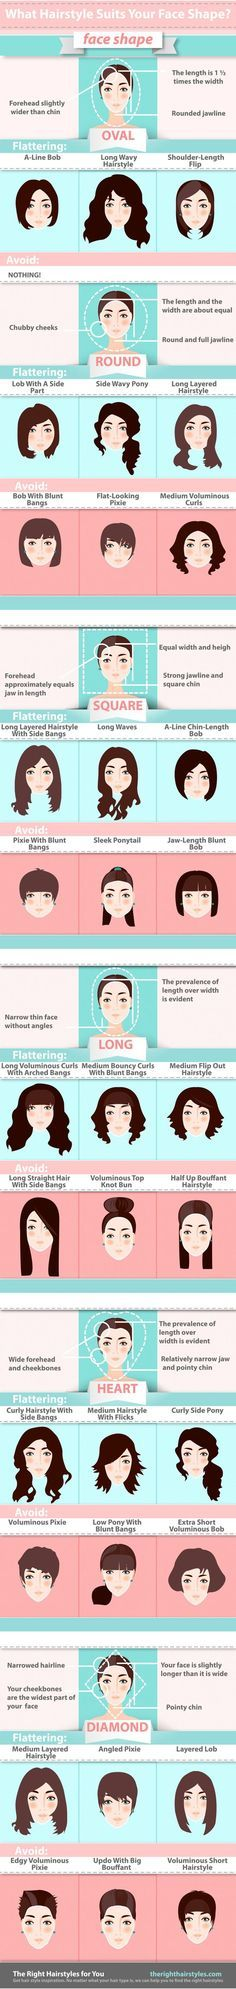 What Hairstyle Suits Your Face Shape #hair: